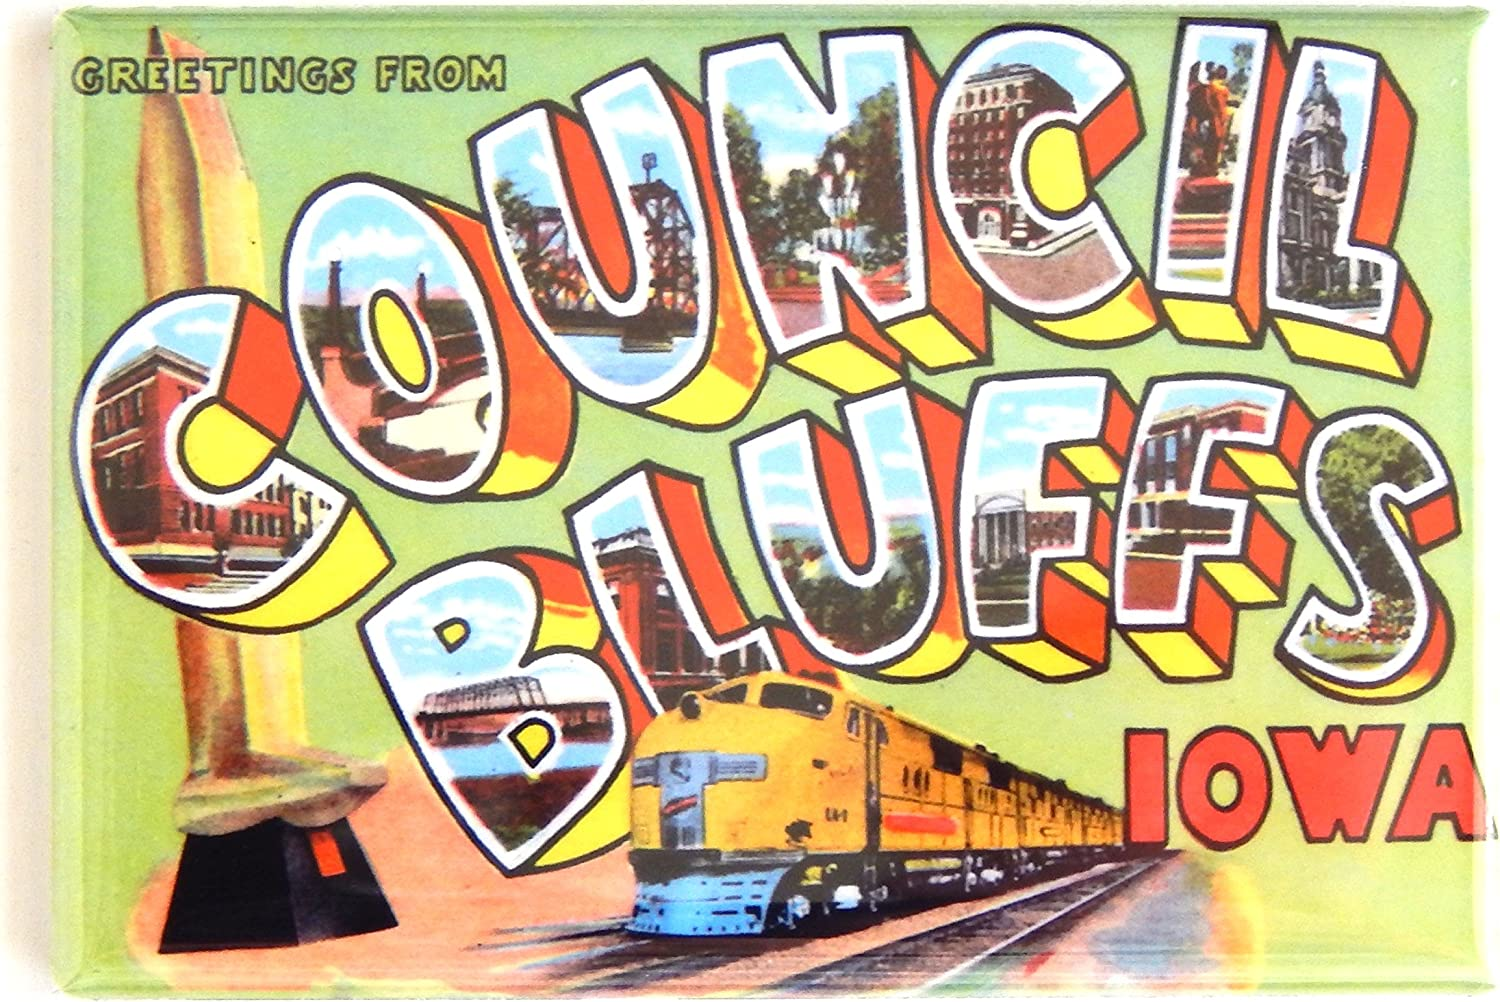 Greetings from Council Bluffs Iowa Fridge Magnet (2 x 3 inches)